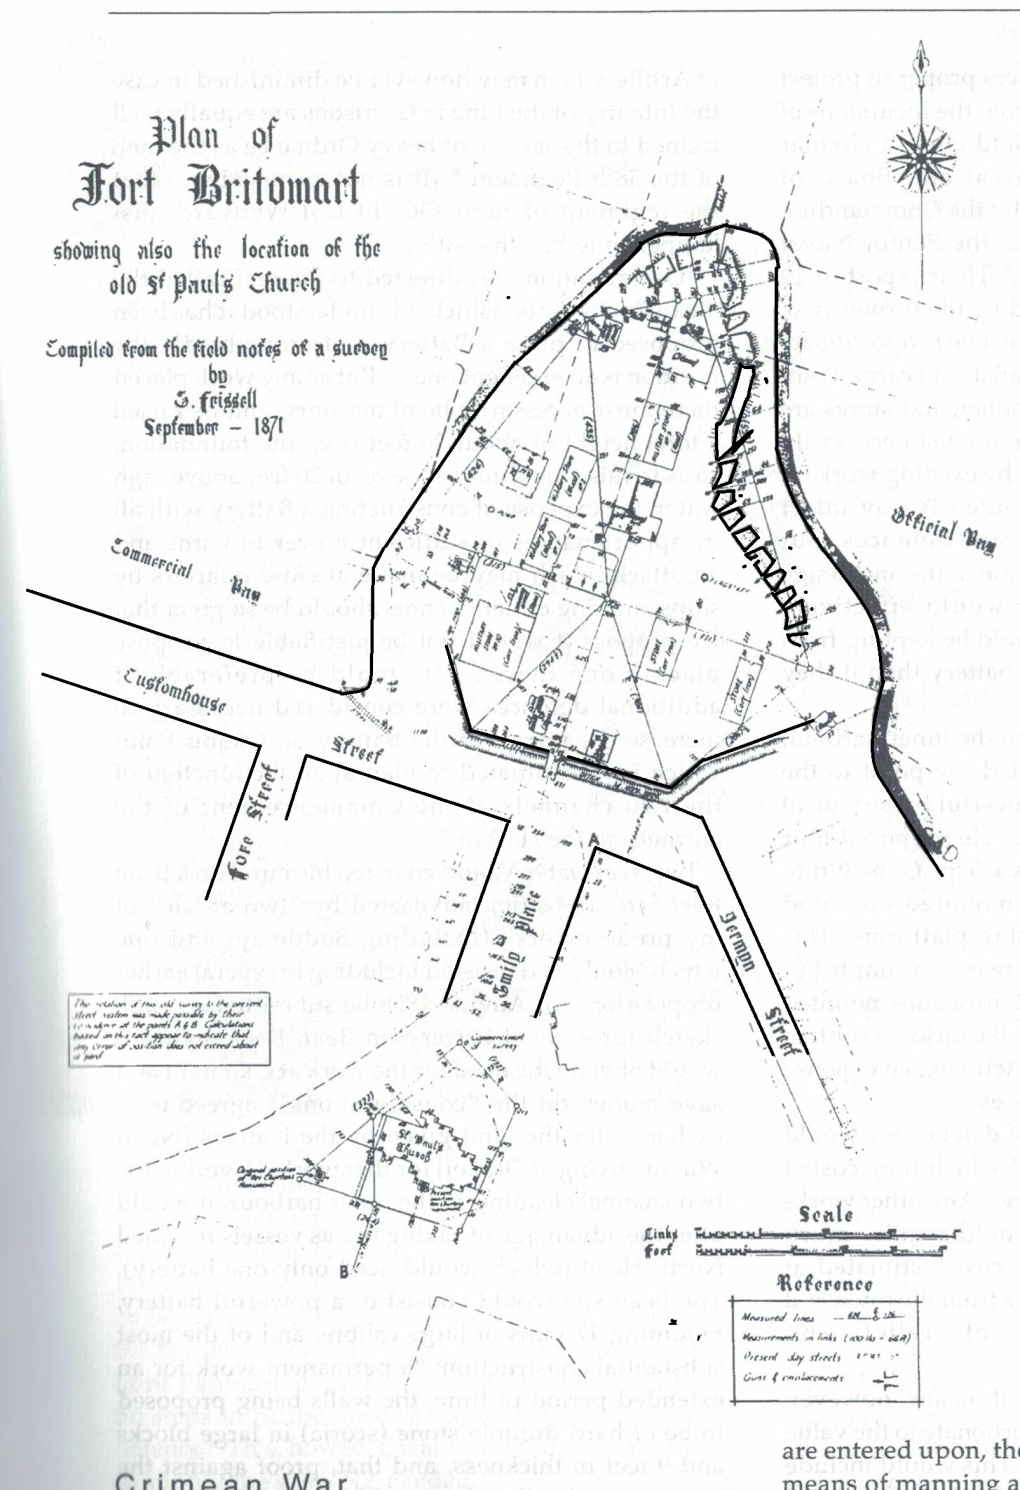 Fort Britomart Map